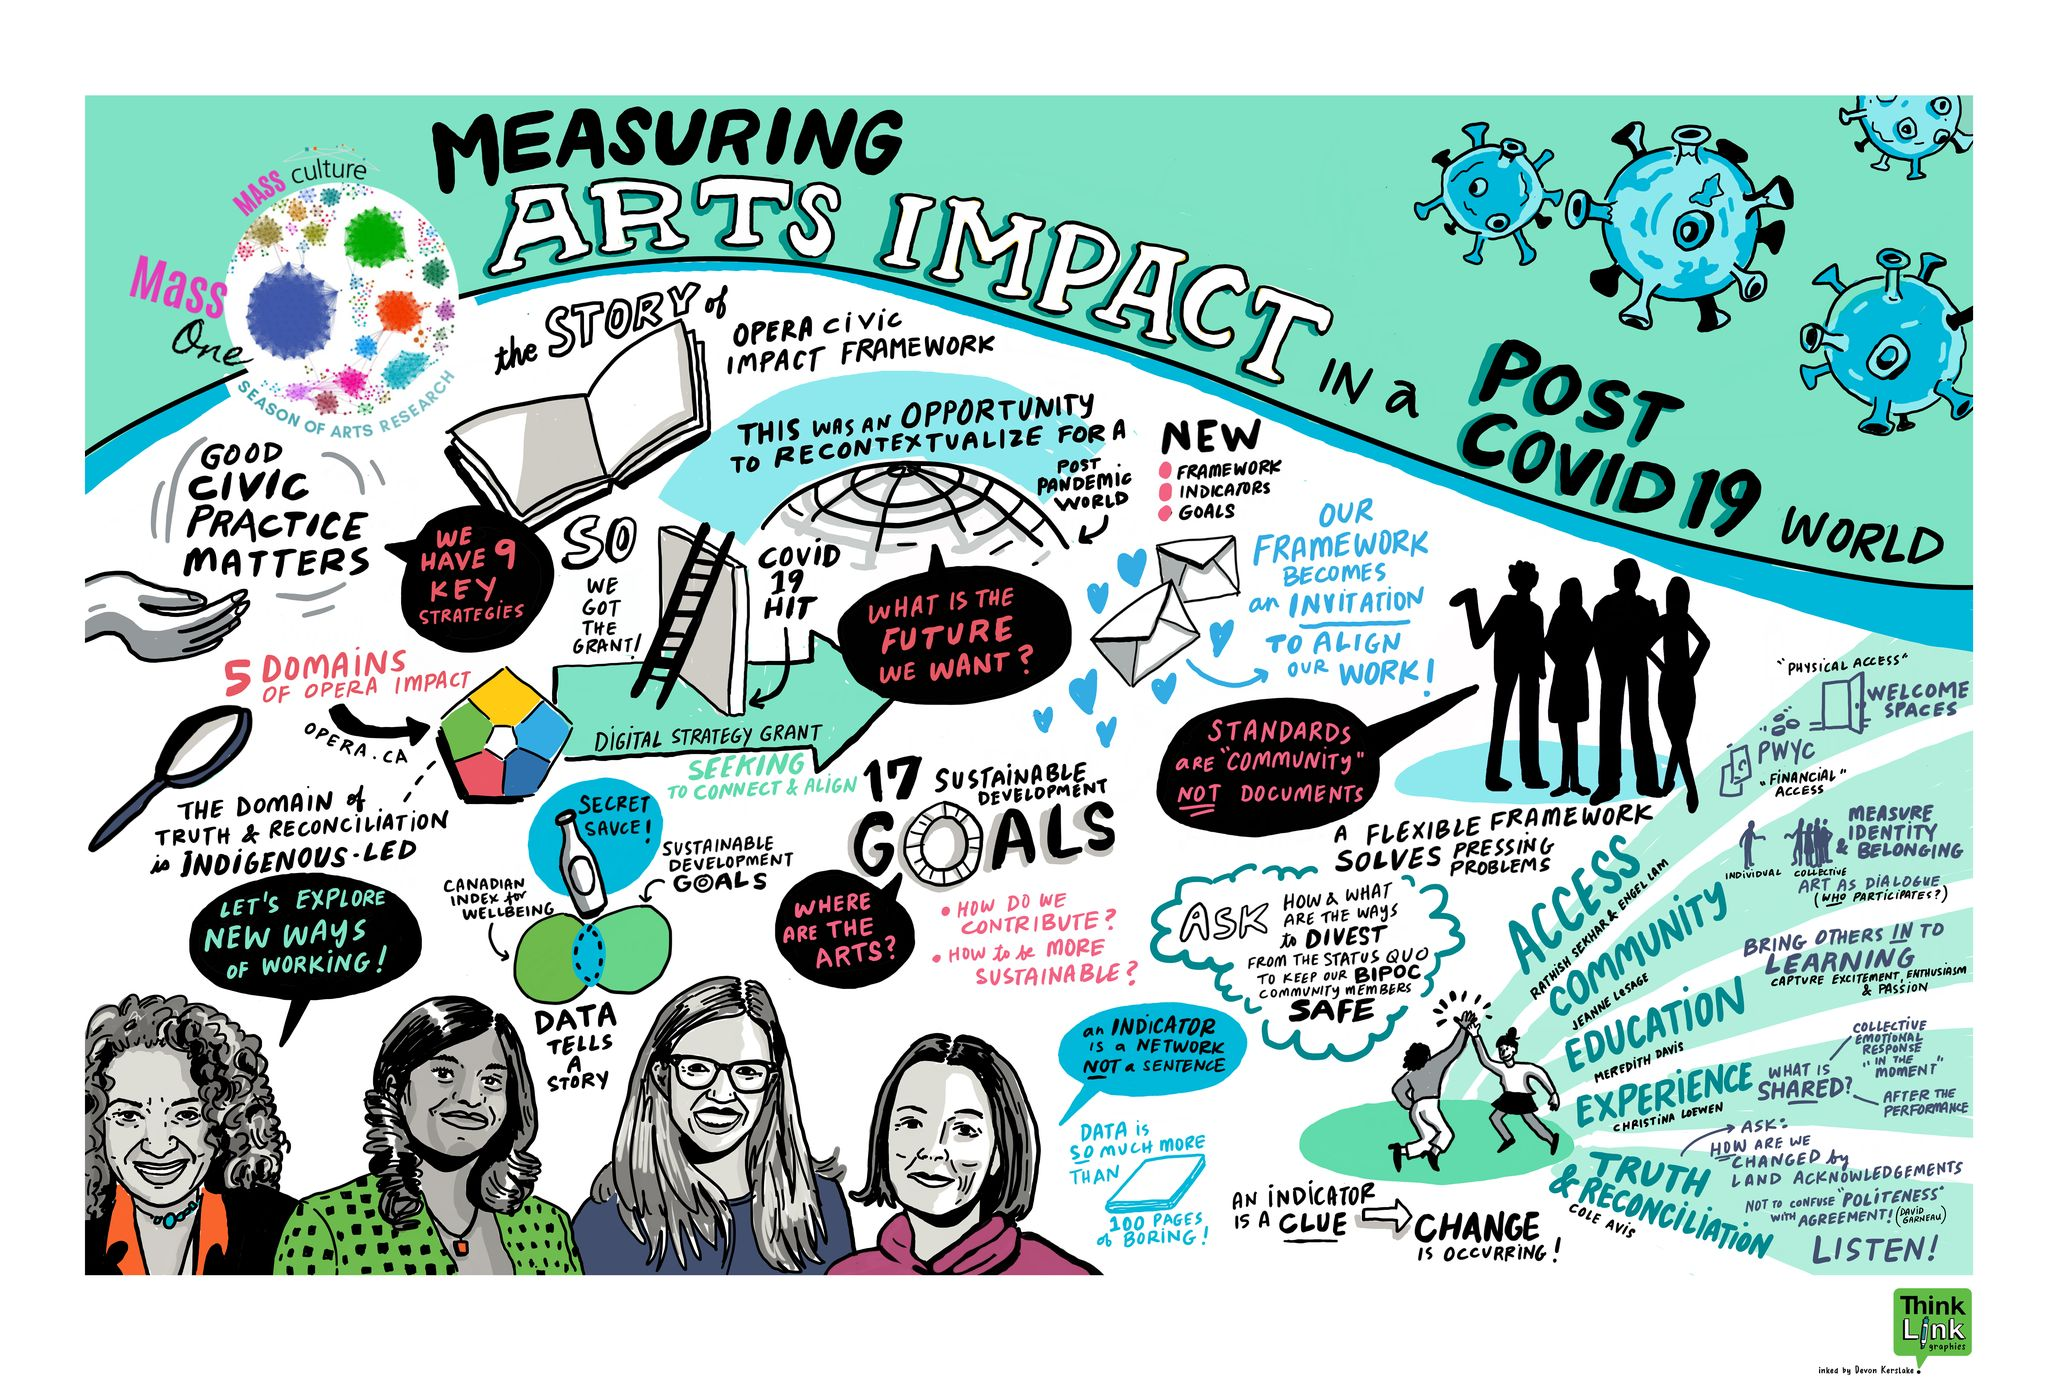 Graphic Recording on Arts Impact by Devon Kerslake